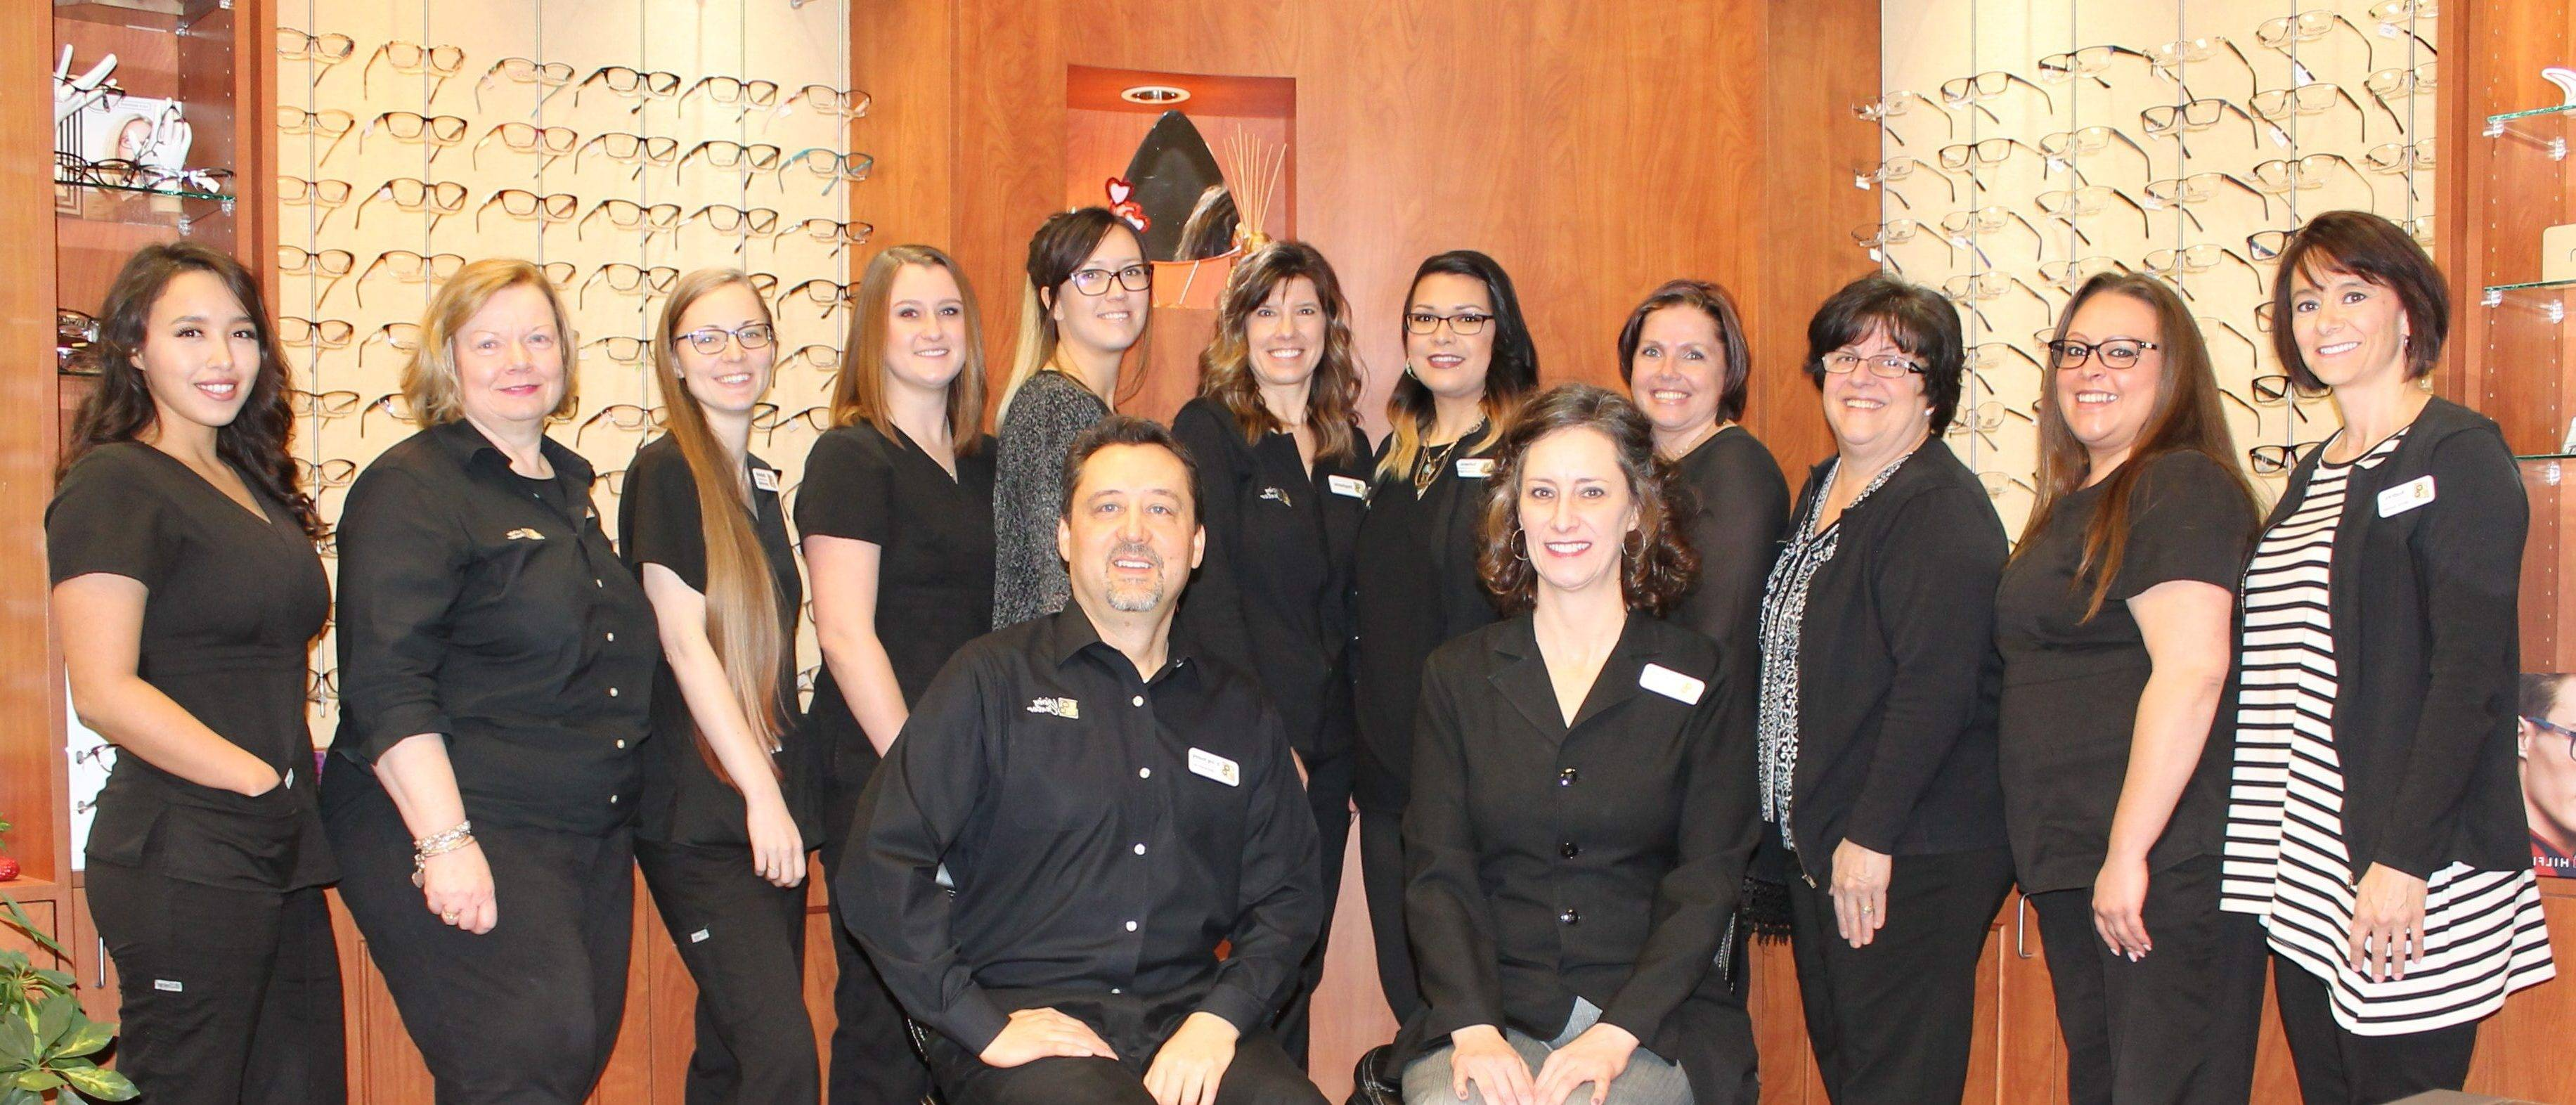 Caring Staff at 20/20 Vision Center in Fort Collins, Colorado